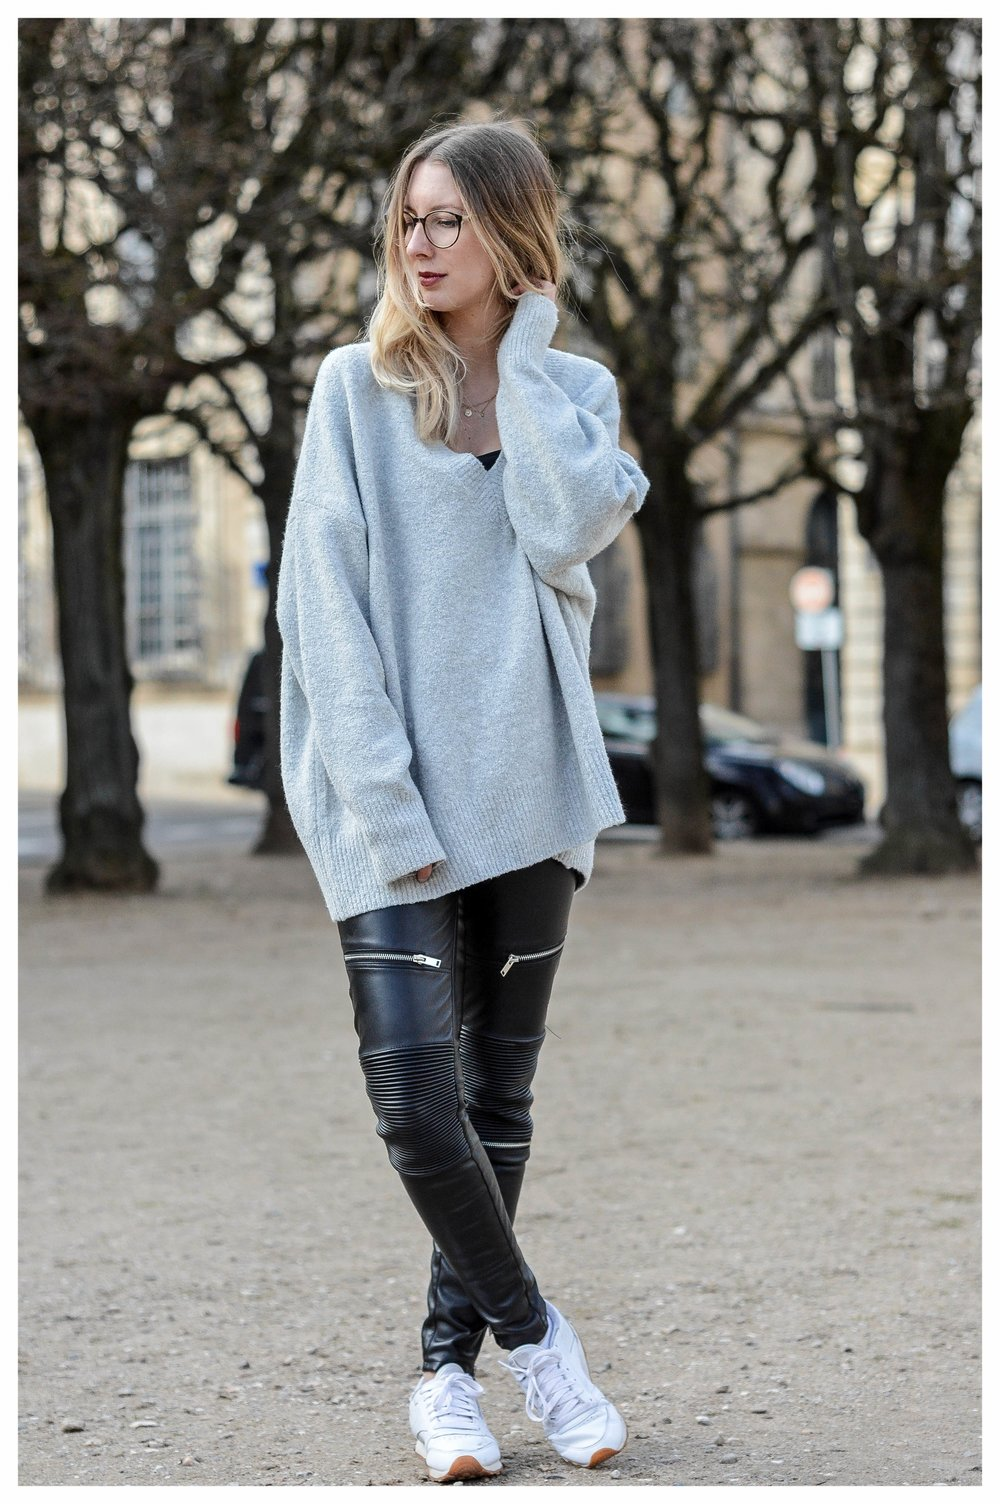 Grey Sweater Nancy - OSIARAH.COM (18 of 19).jpg